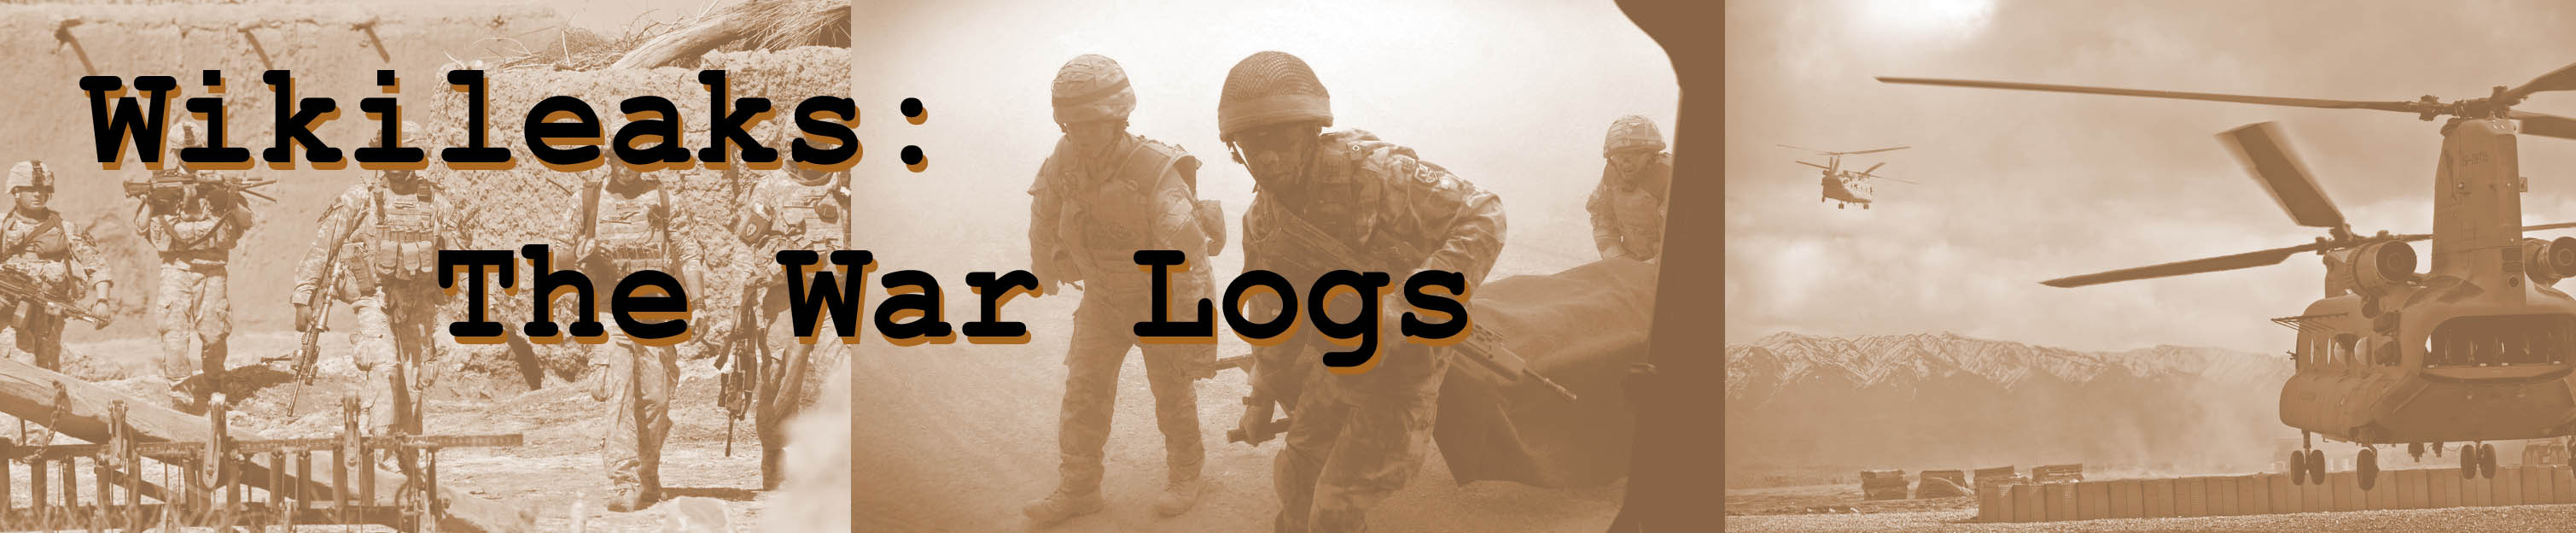 Wikileaks and Afghanistan: The War Logs